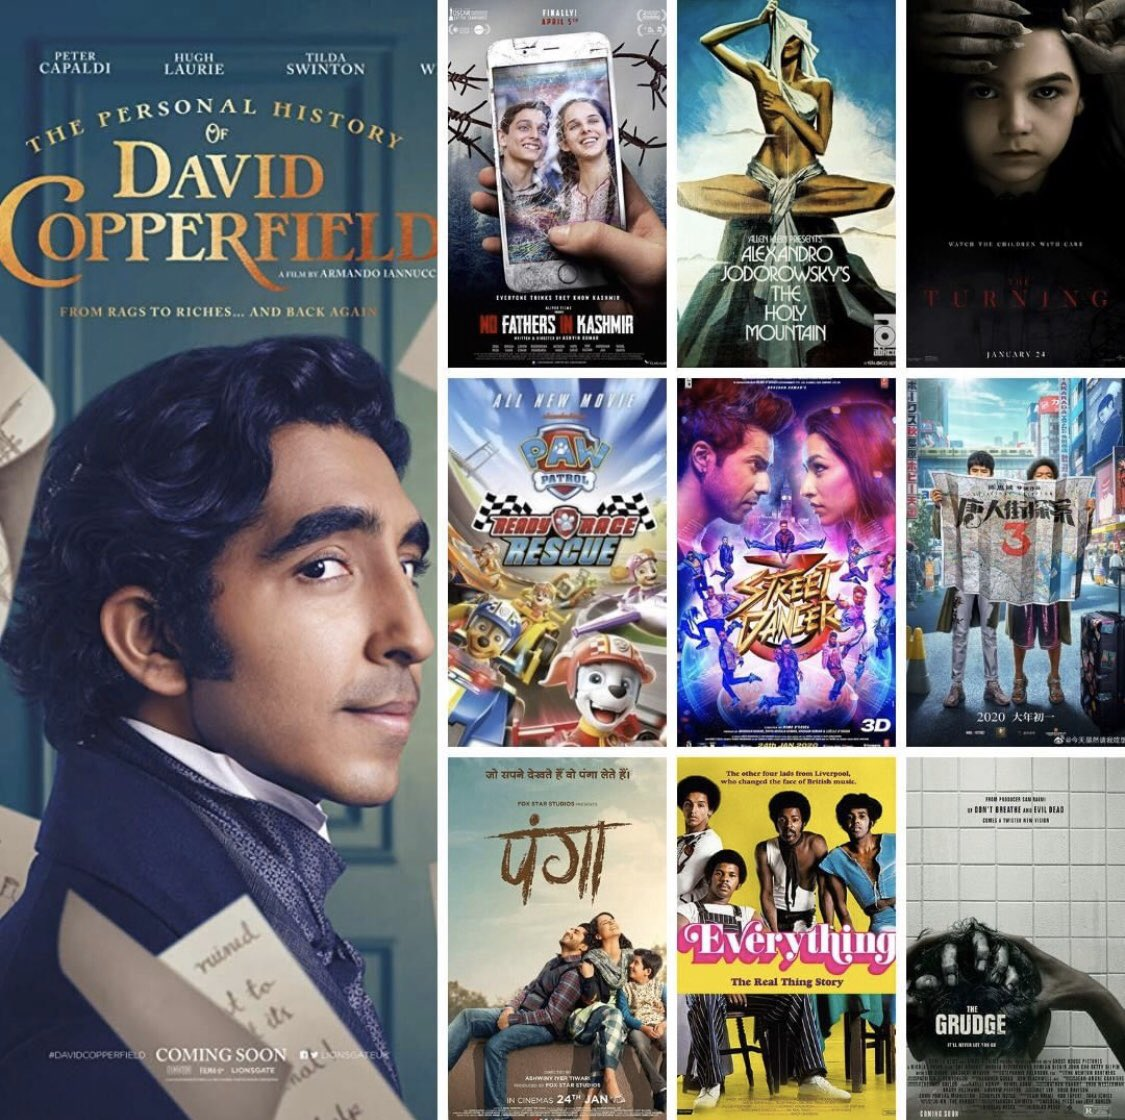 What did you watch at the cinema this weekend?   #newreleases #cinema #weekend #sunday #cinematrip #weekendfilms #movies #collage #instamovies #instafilmspic.twitter.com/jWQHc7a0o7